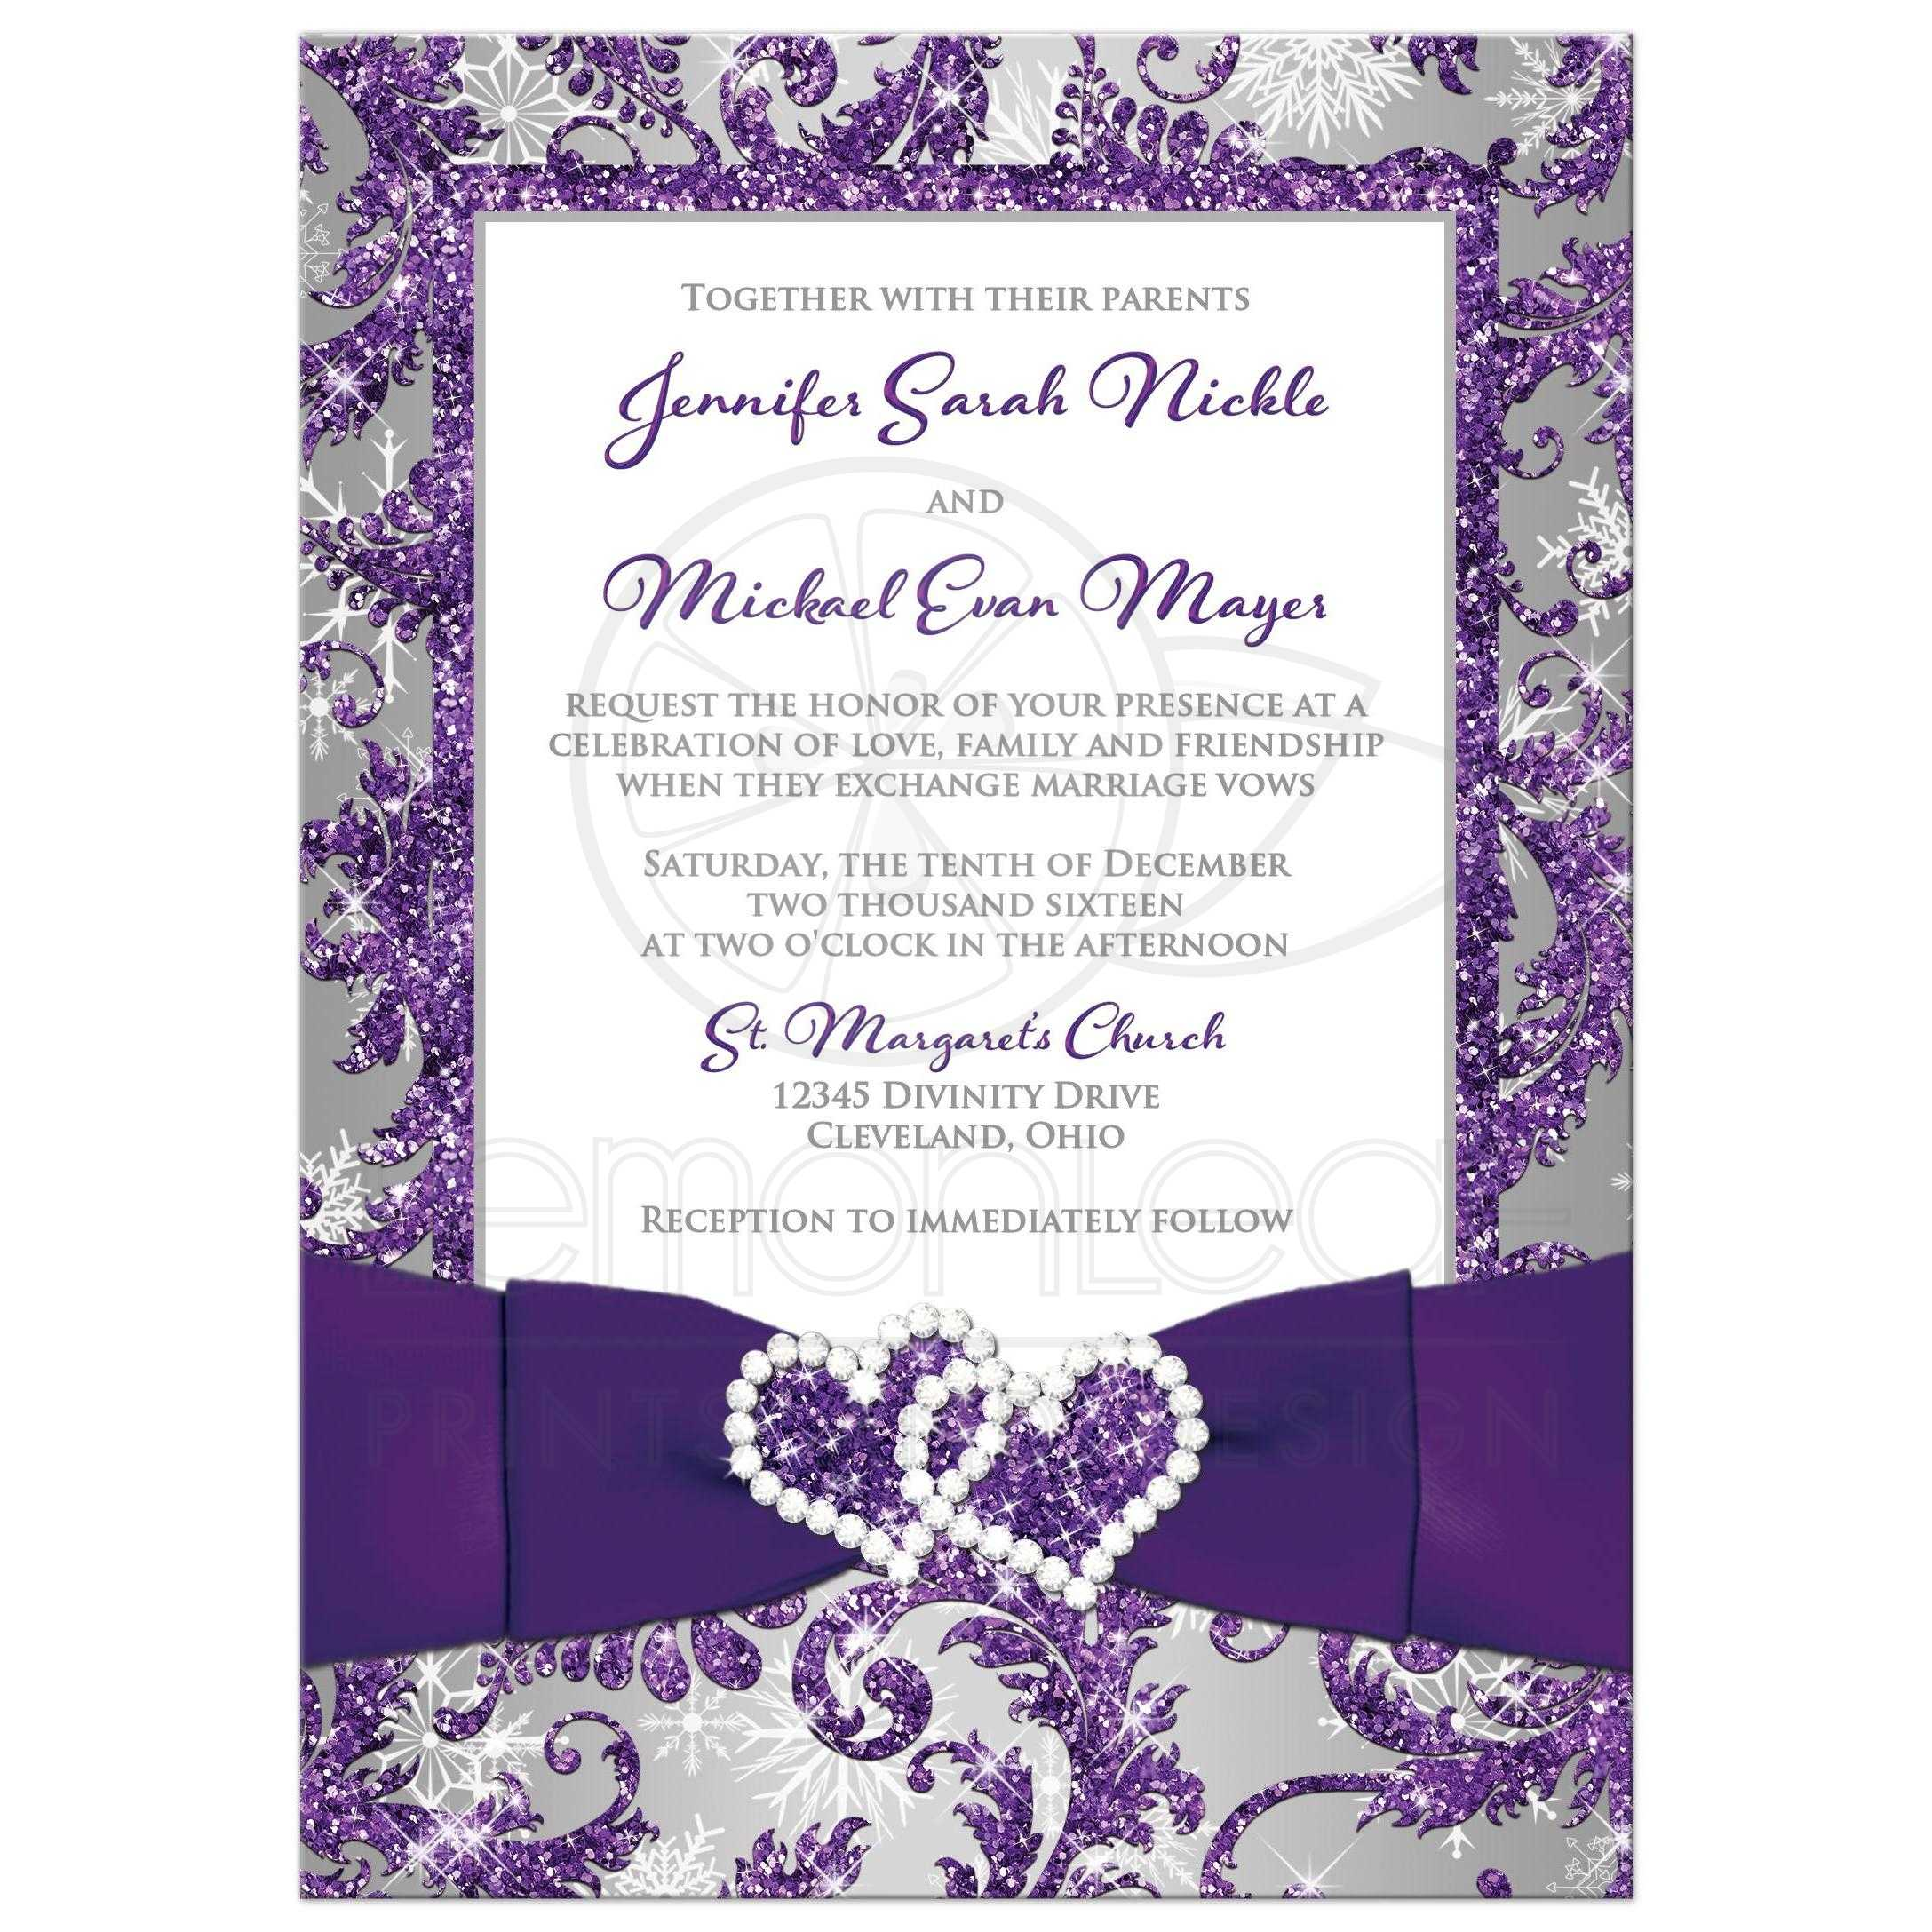 Winter wonderland photo wedding invitation purple silver white great winter wonderland photo wedding invitation in ice purple silver and white snowflakes with junglespirit Image collections